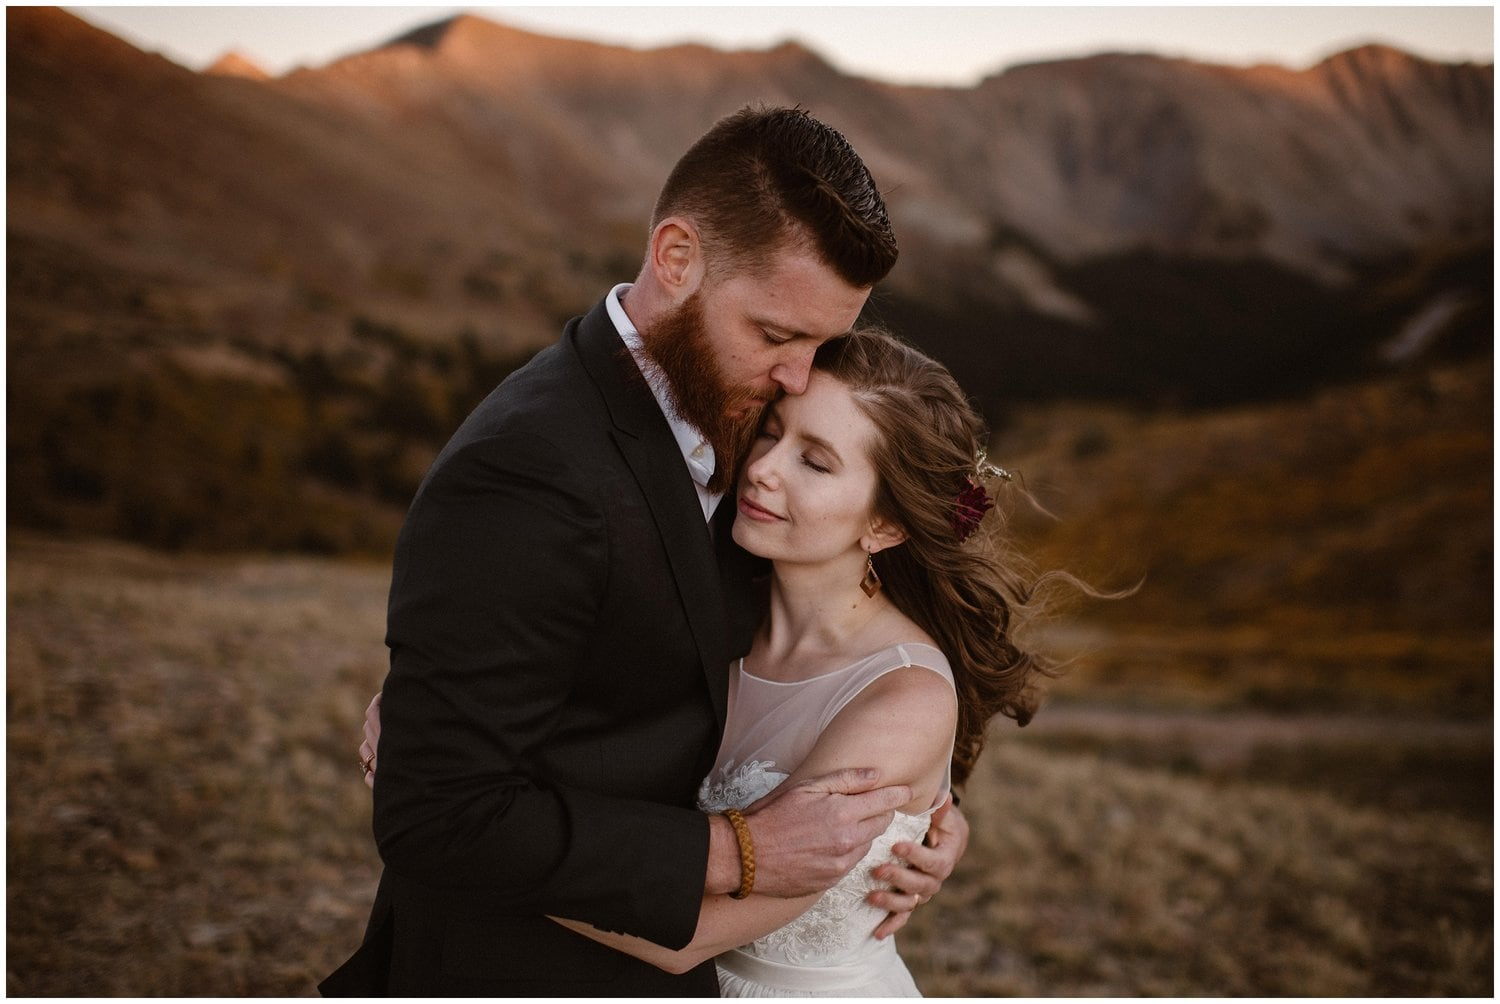 A bride and groom embrace in the mountains on their wedding day.